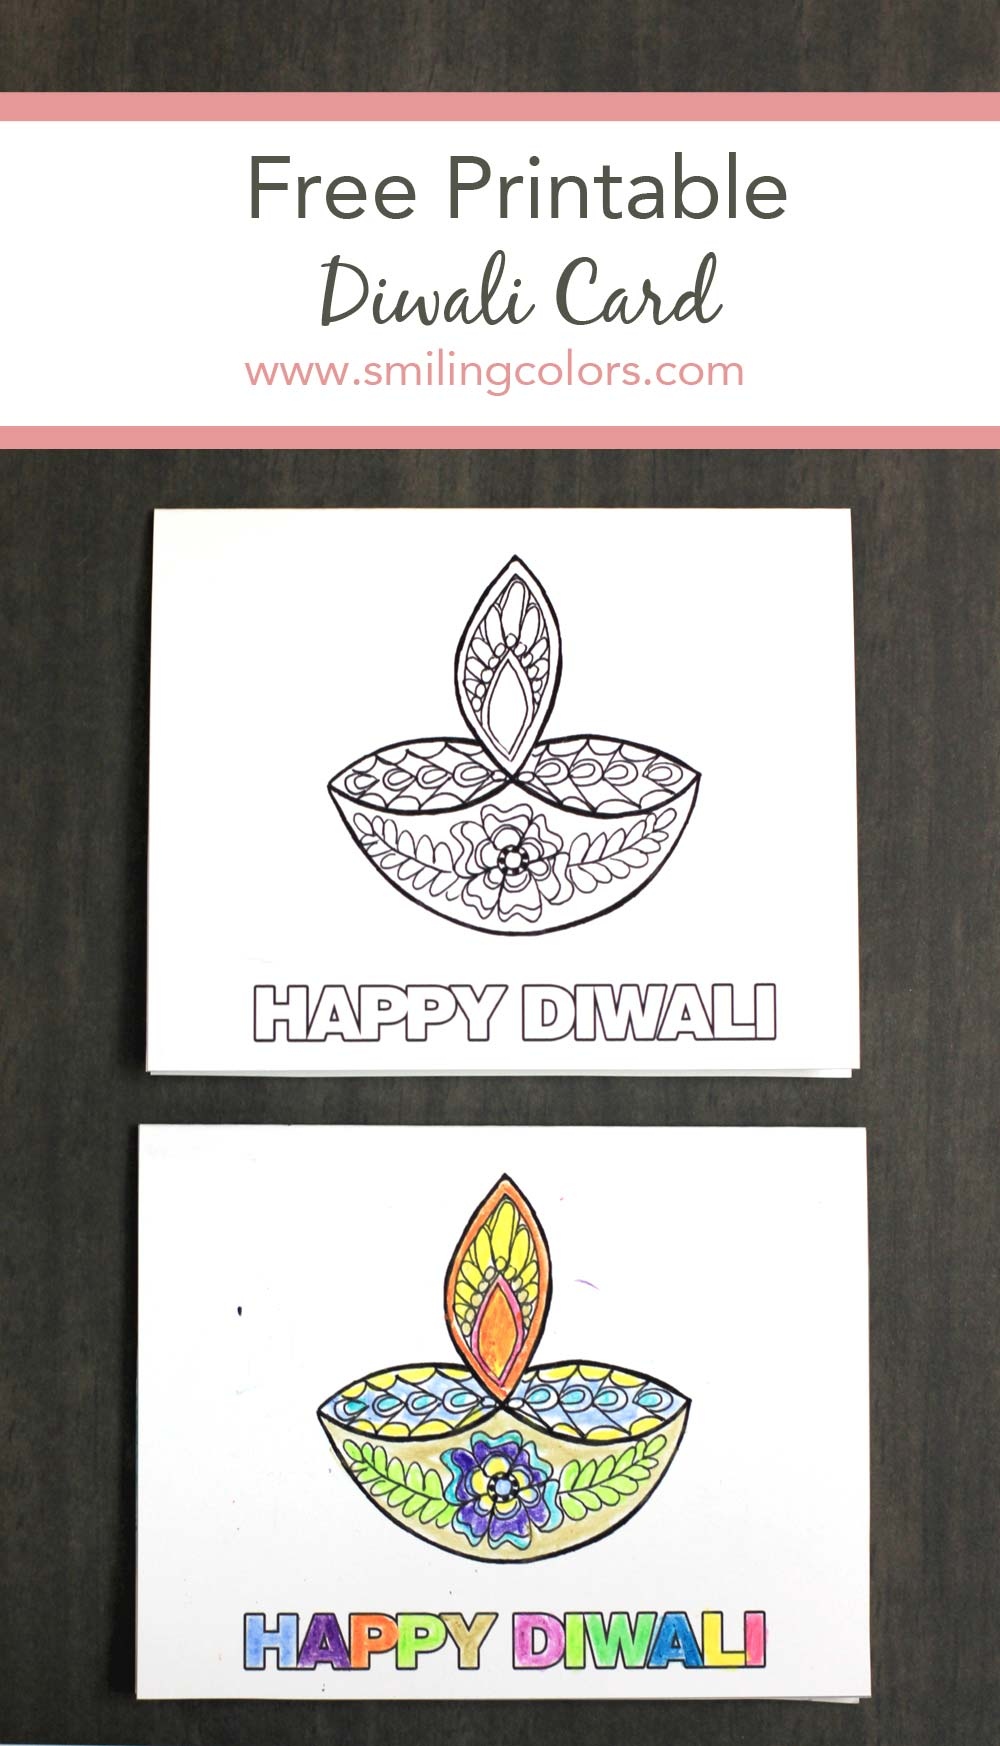 Free Printable Happy Diwali Card Print At Home And Gift Immediately